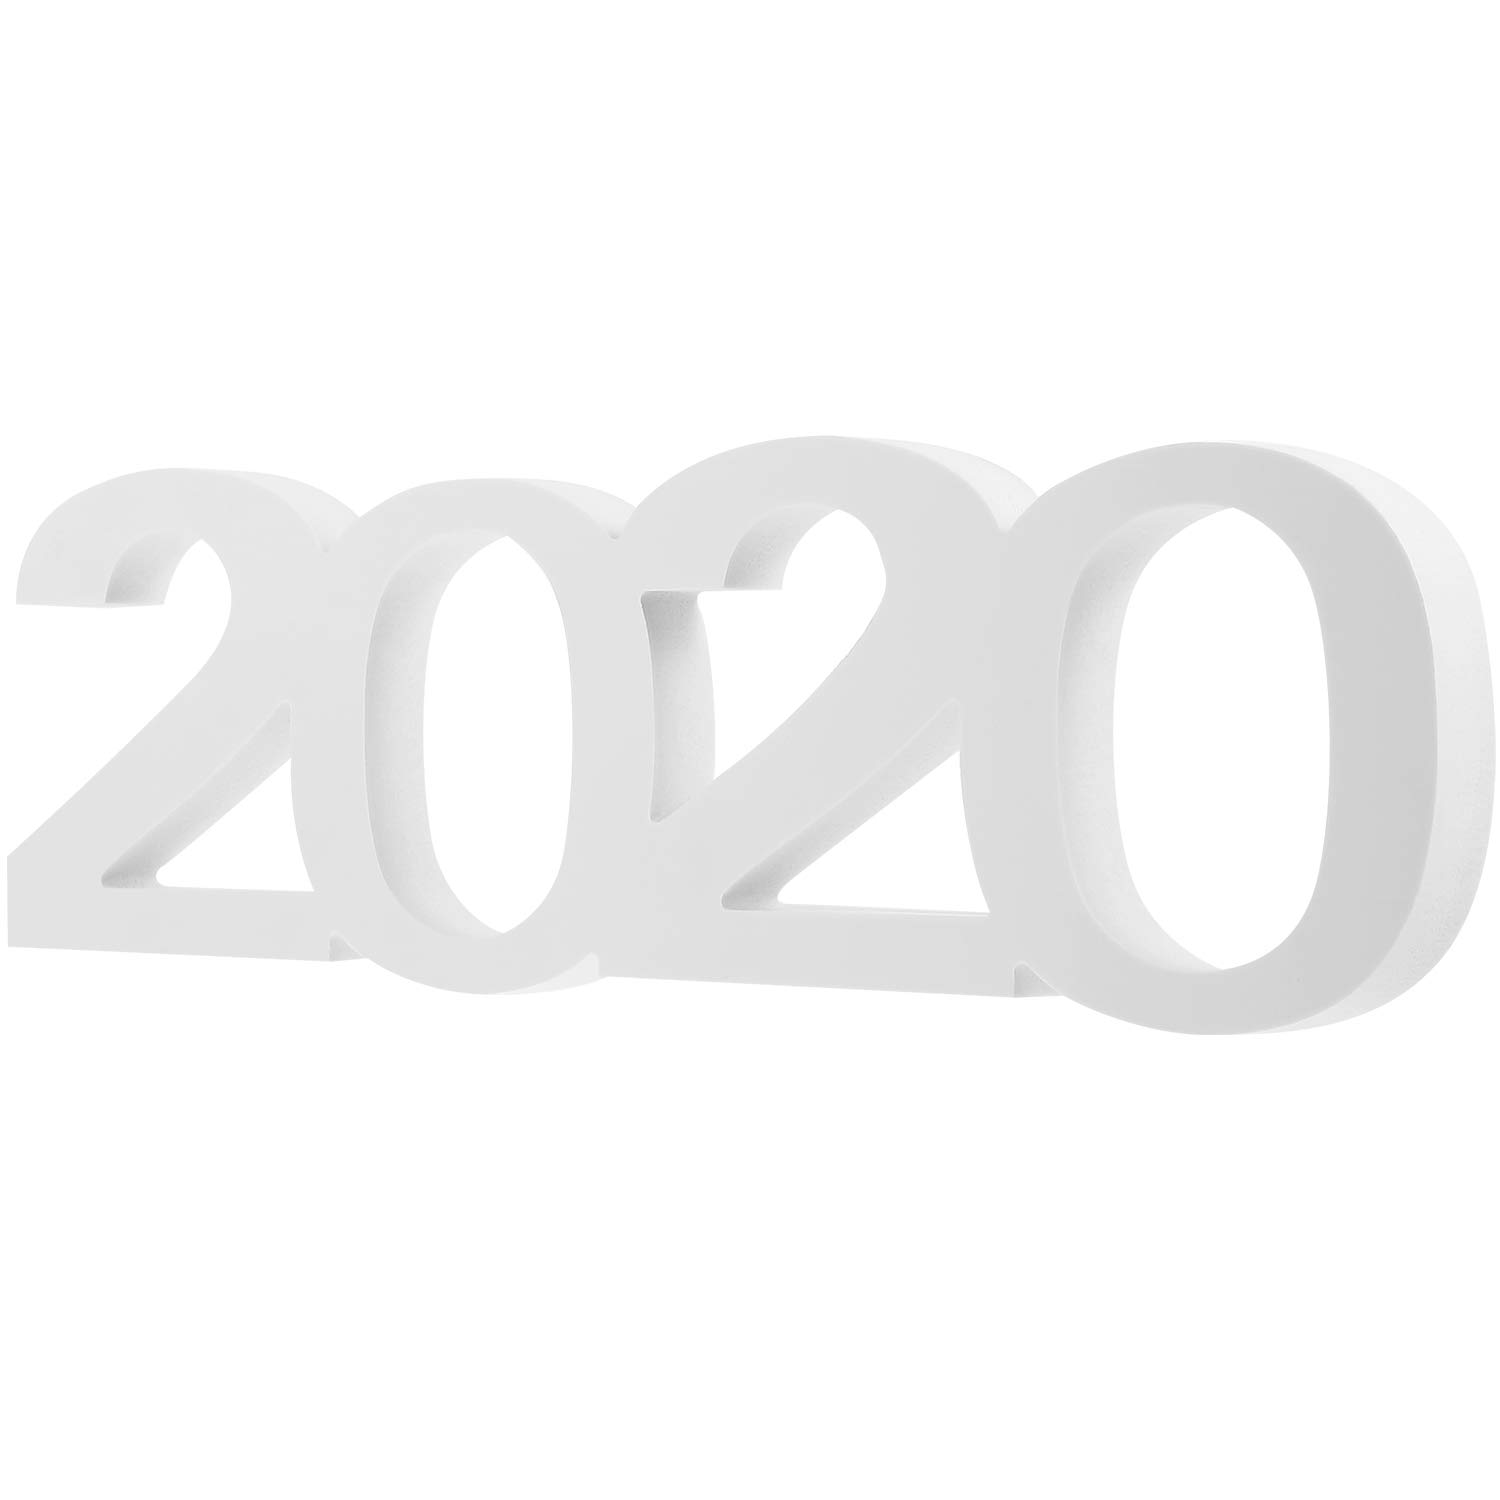 Blulu 2020 Letter Table Sign Class of 2020 Sign New Year Decor for Wedding Graduation Party Decorations (White)